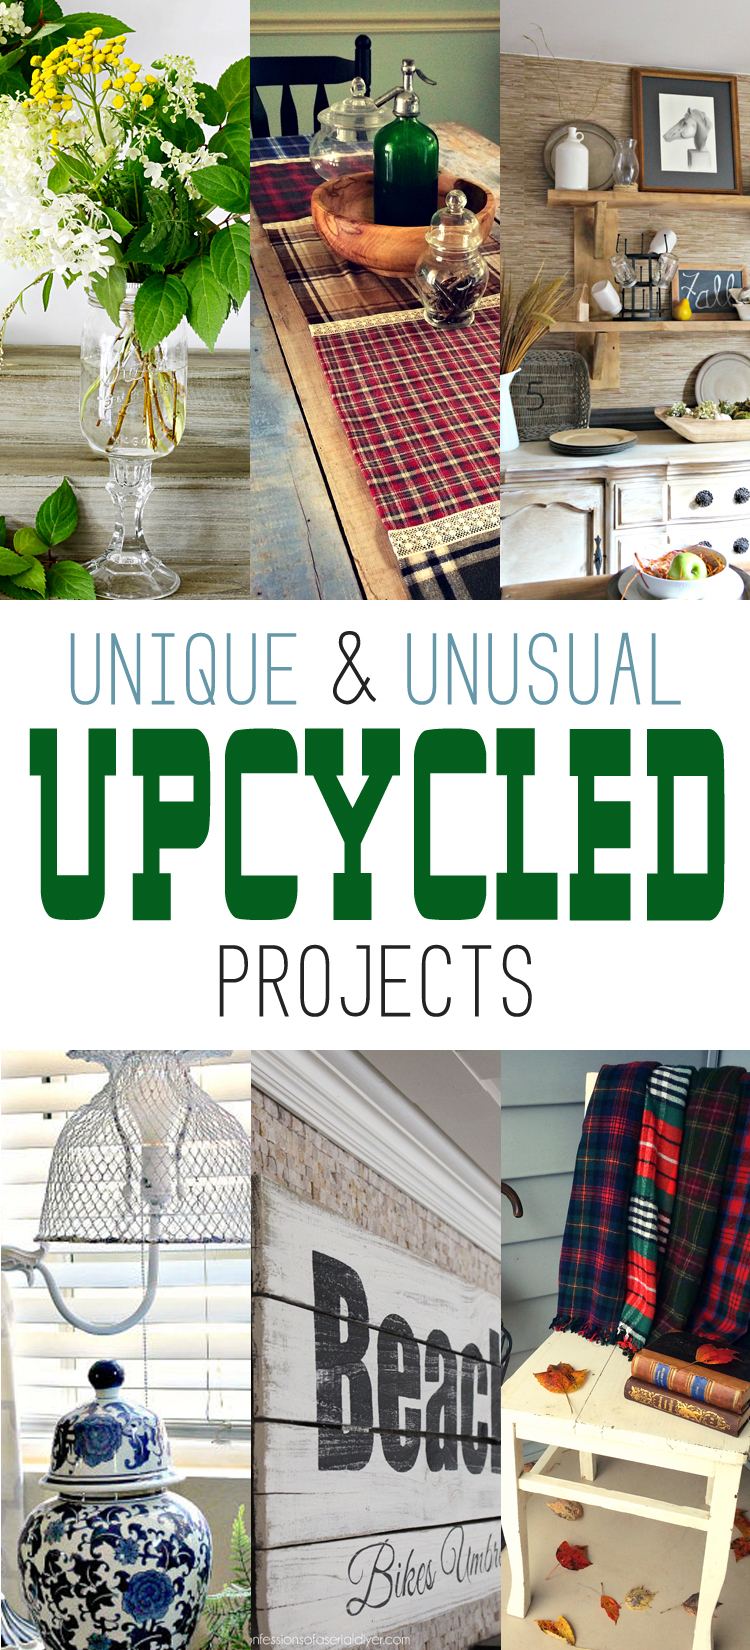 http://thecottagemarket.com/wp-content/uploads/2015/11/Upcycle-TOWER-00001.jpg